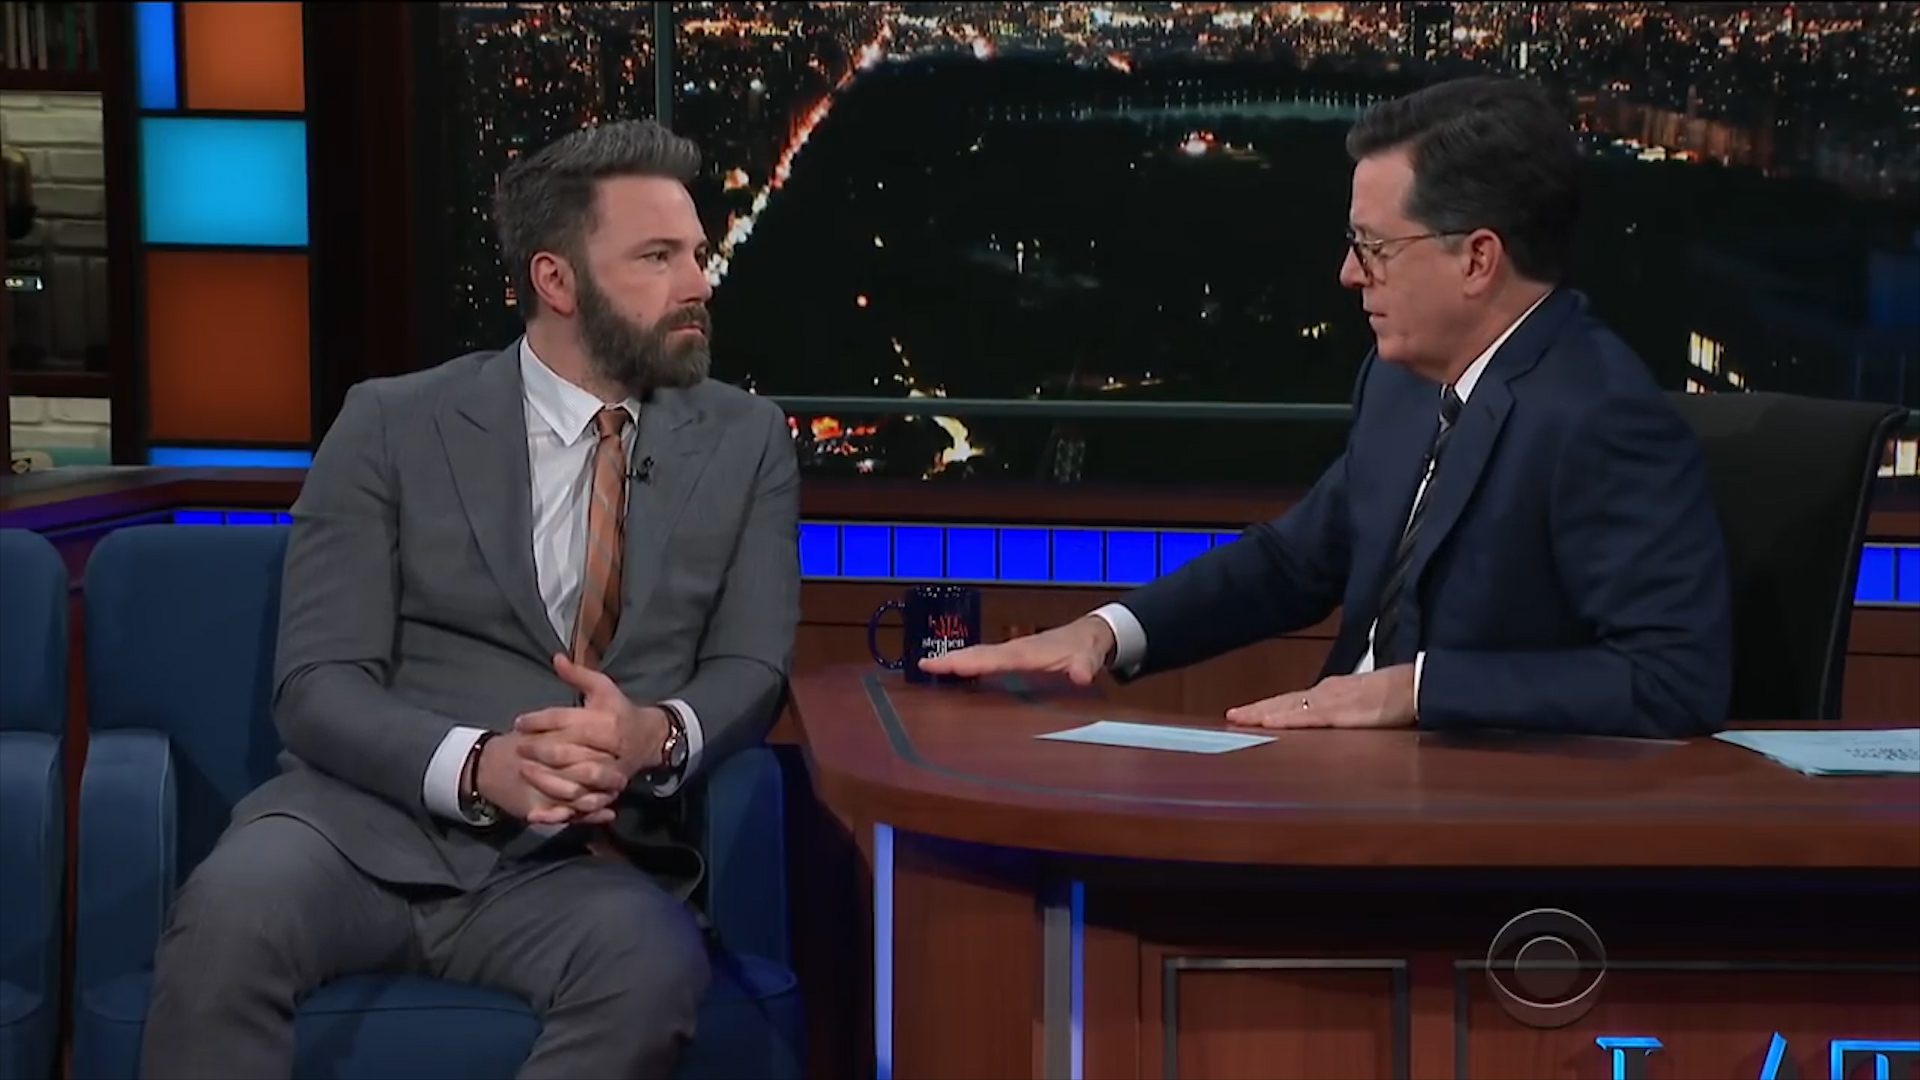 Ben Affleck gets grilled about Harvey Weinstein